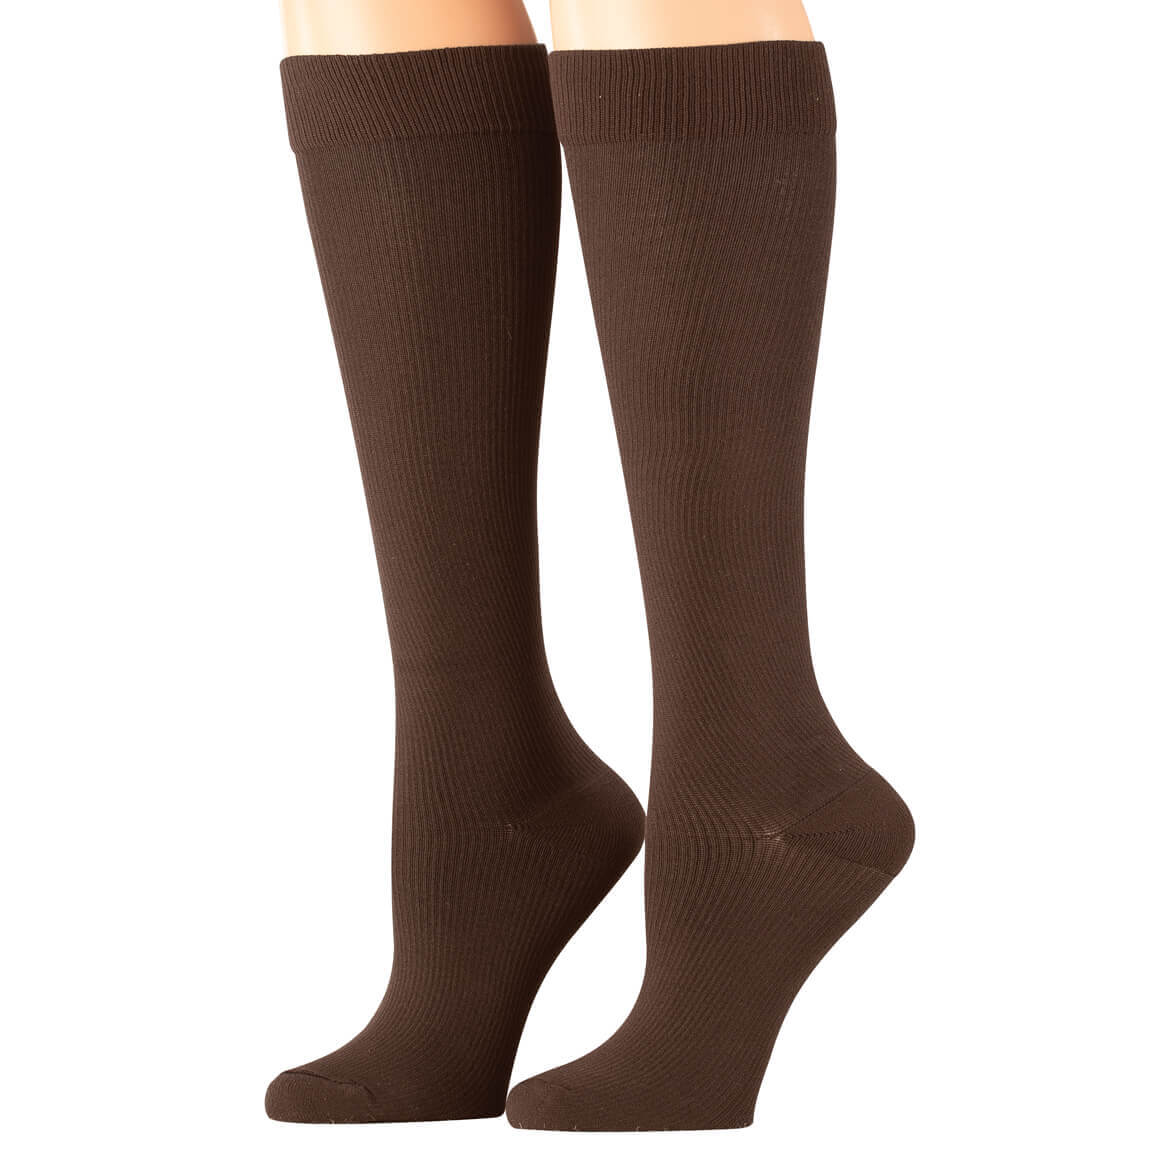 Silver StepsTM Compression Socks 8-15 mmHg